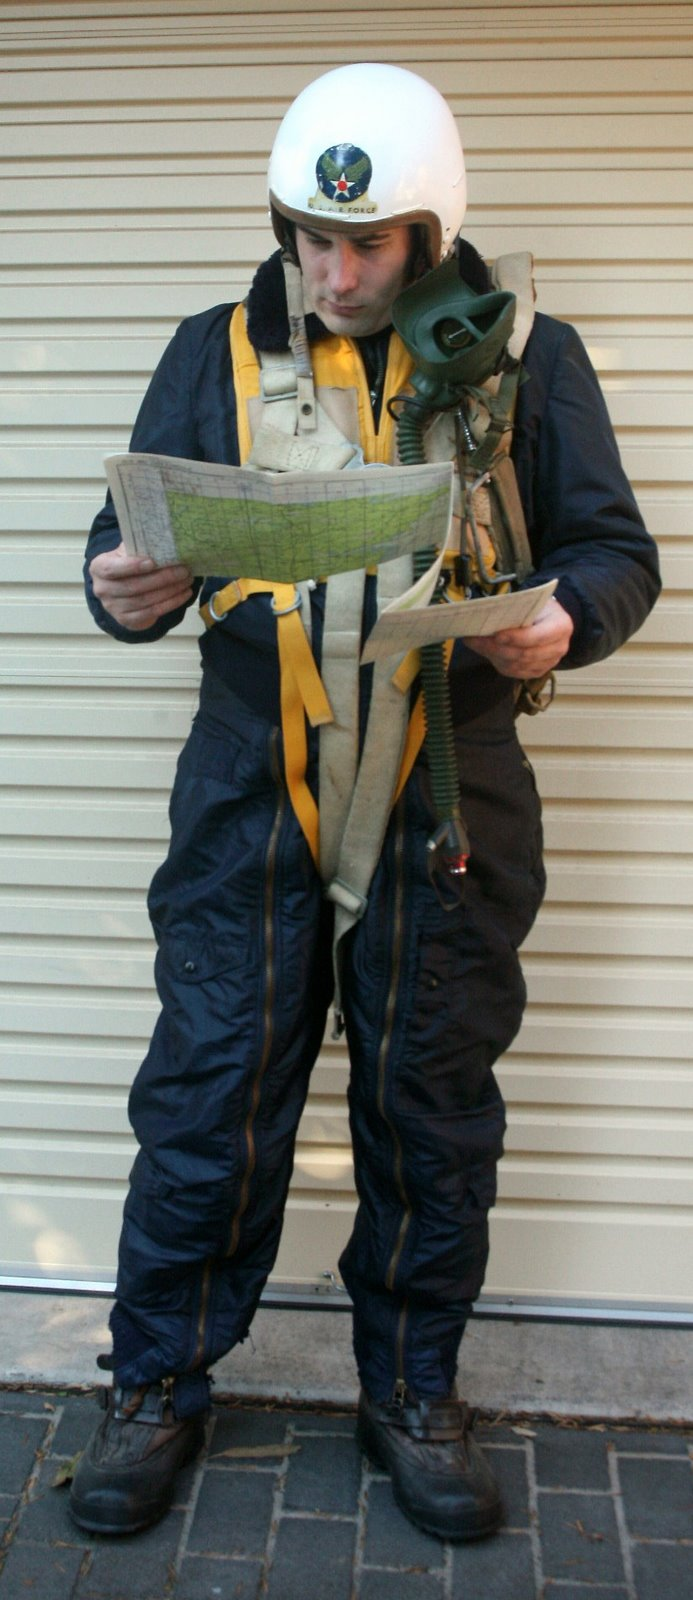 1950s USAF KOREAN WAR COLD WEATHER FLIGHT GEAR DISPLAY  Heritage Flightgear Displays